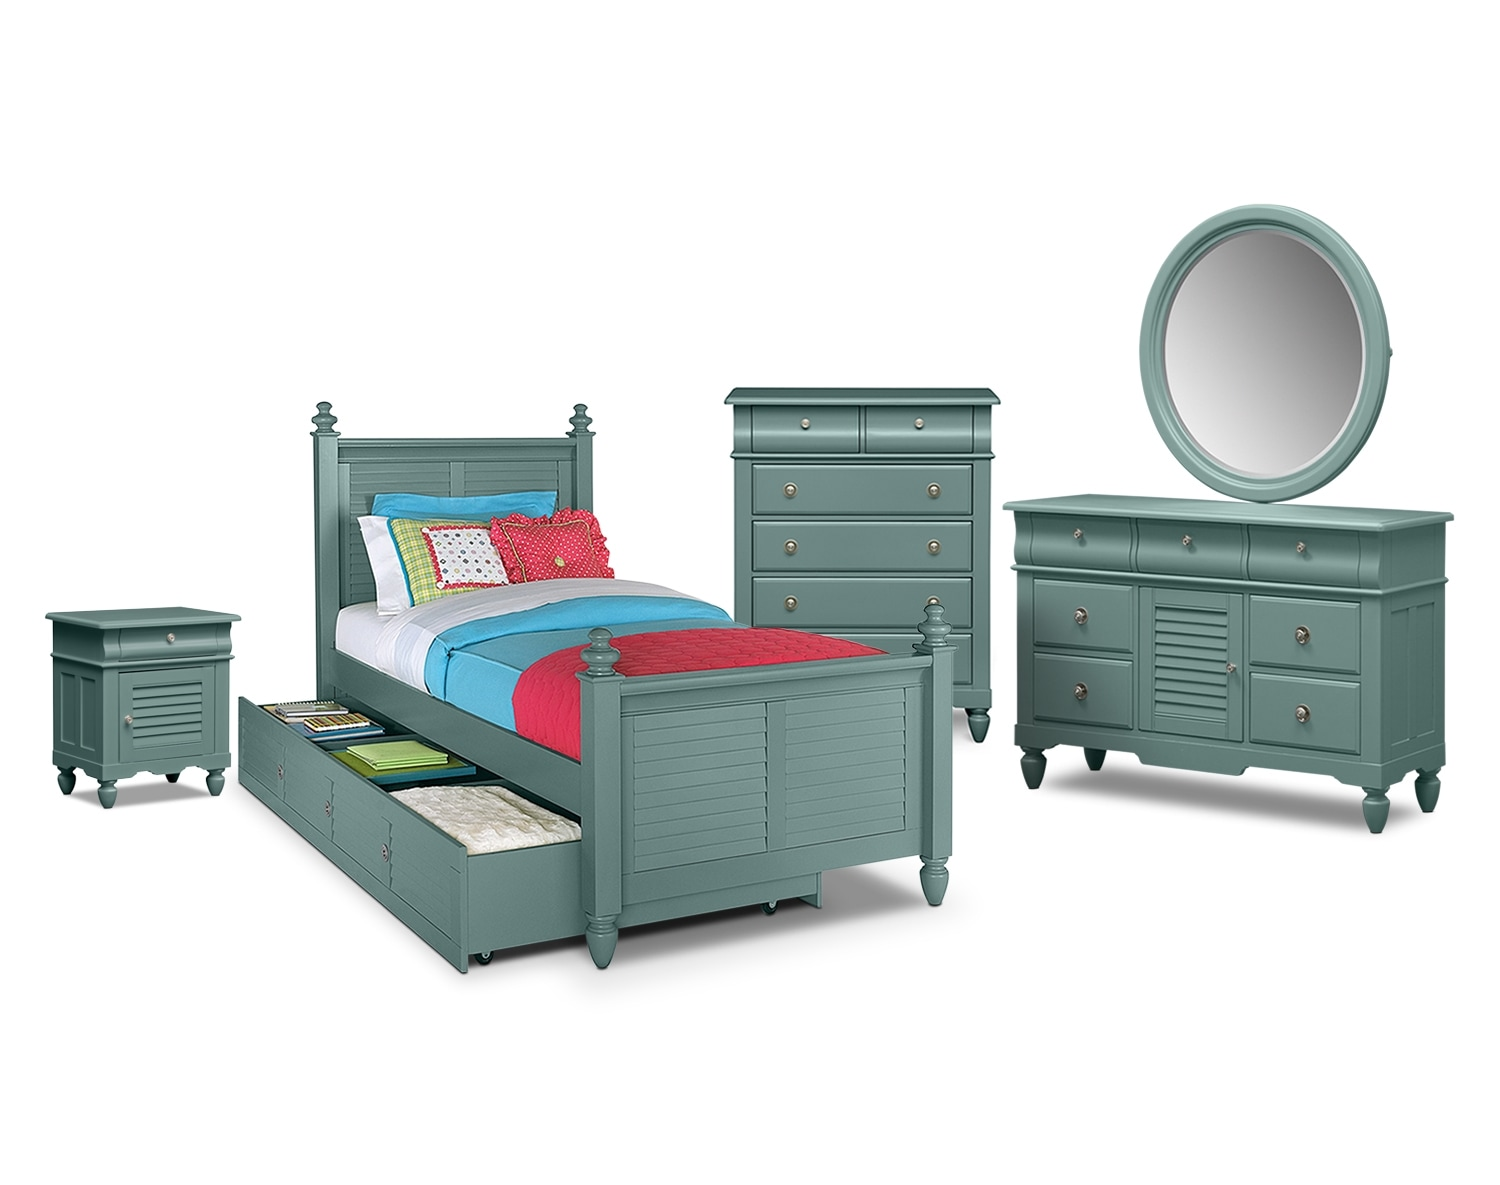 Kids Furniture - The Mayflower Blue Collection - Twin Bed with Trundle